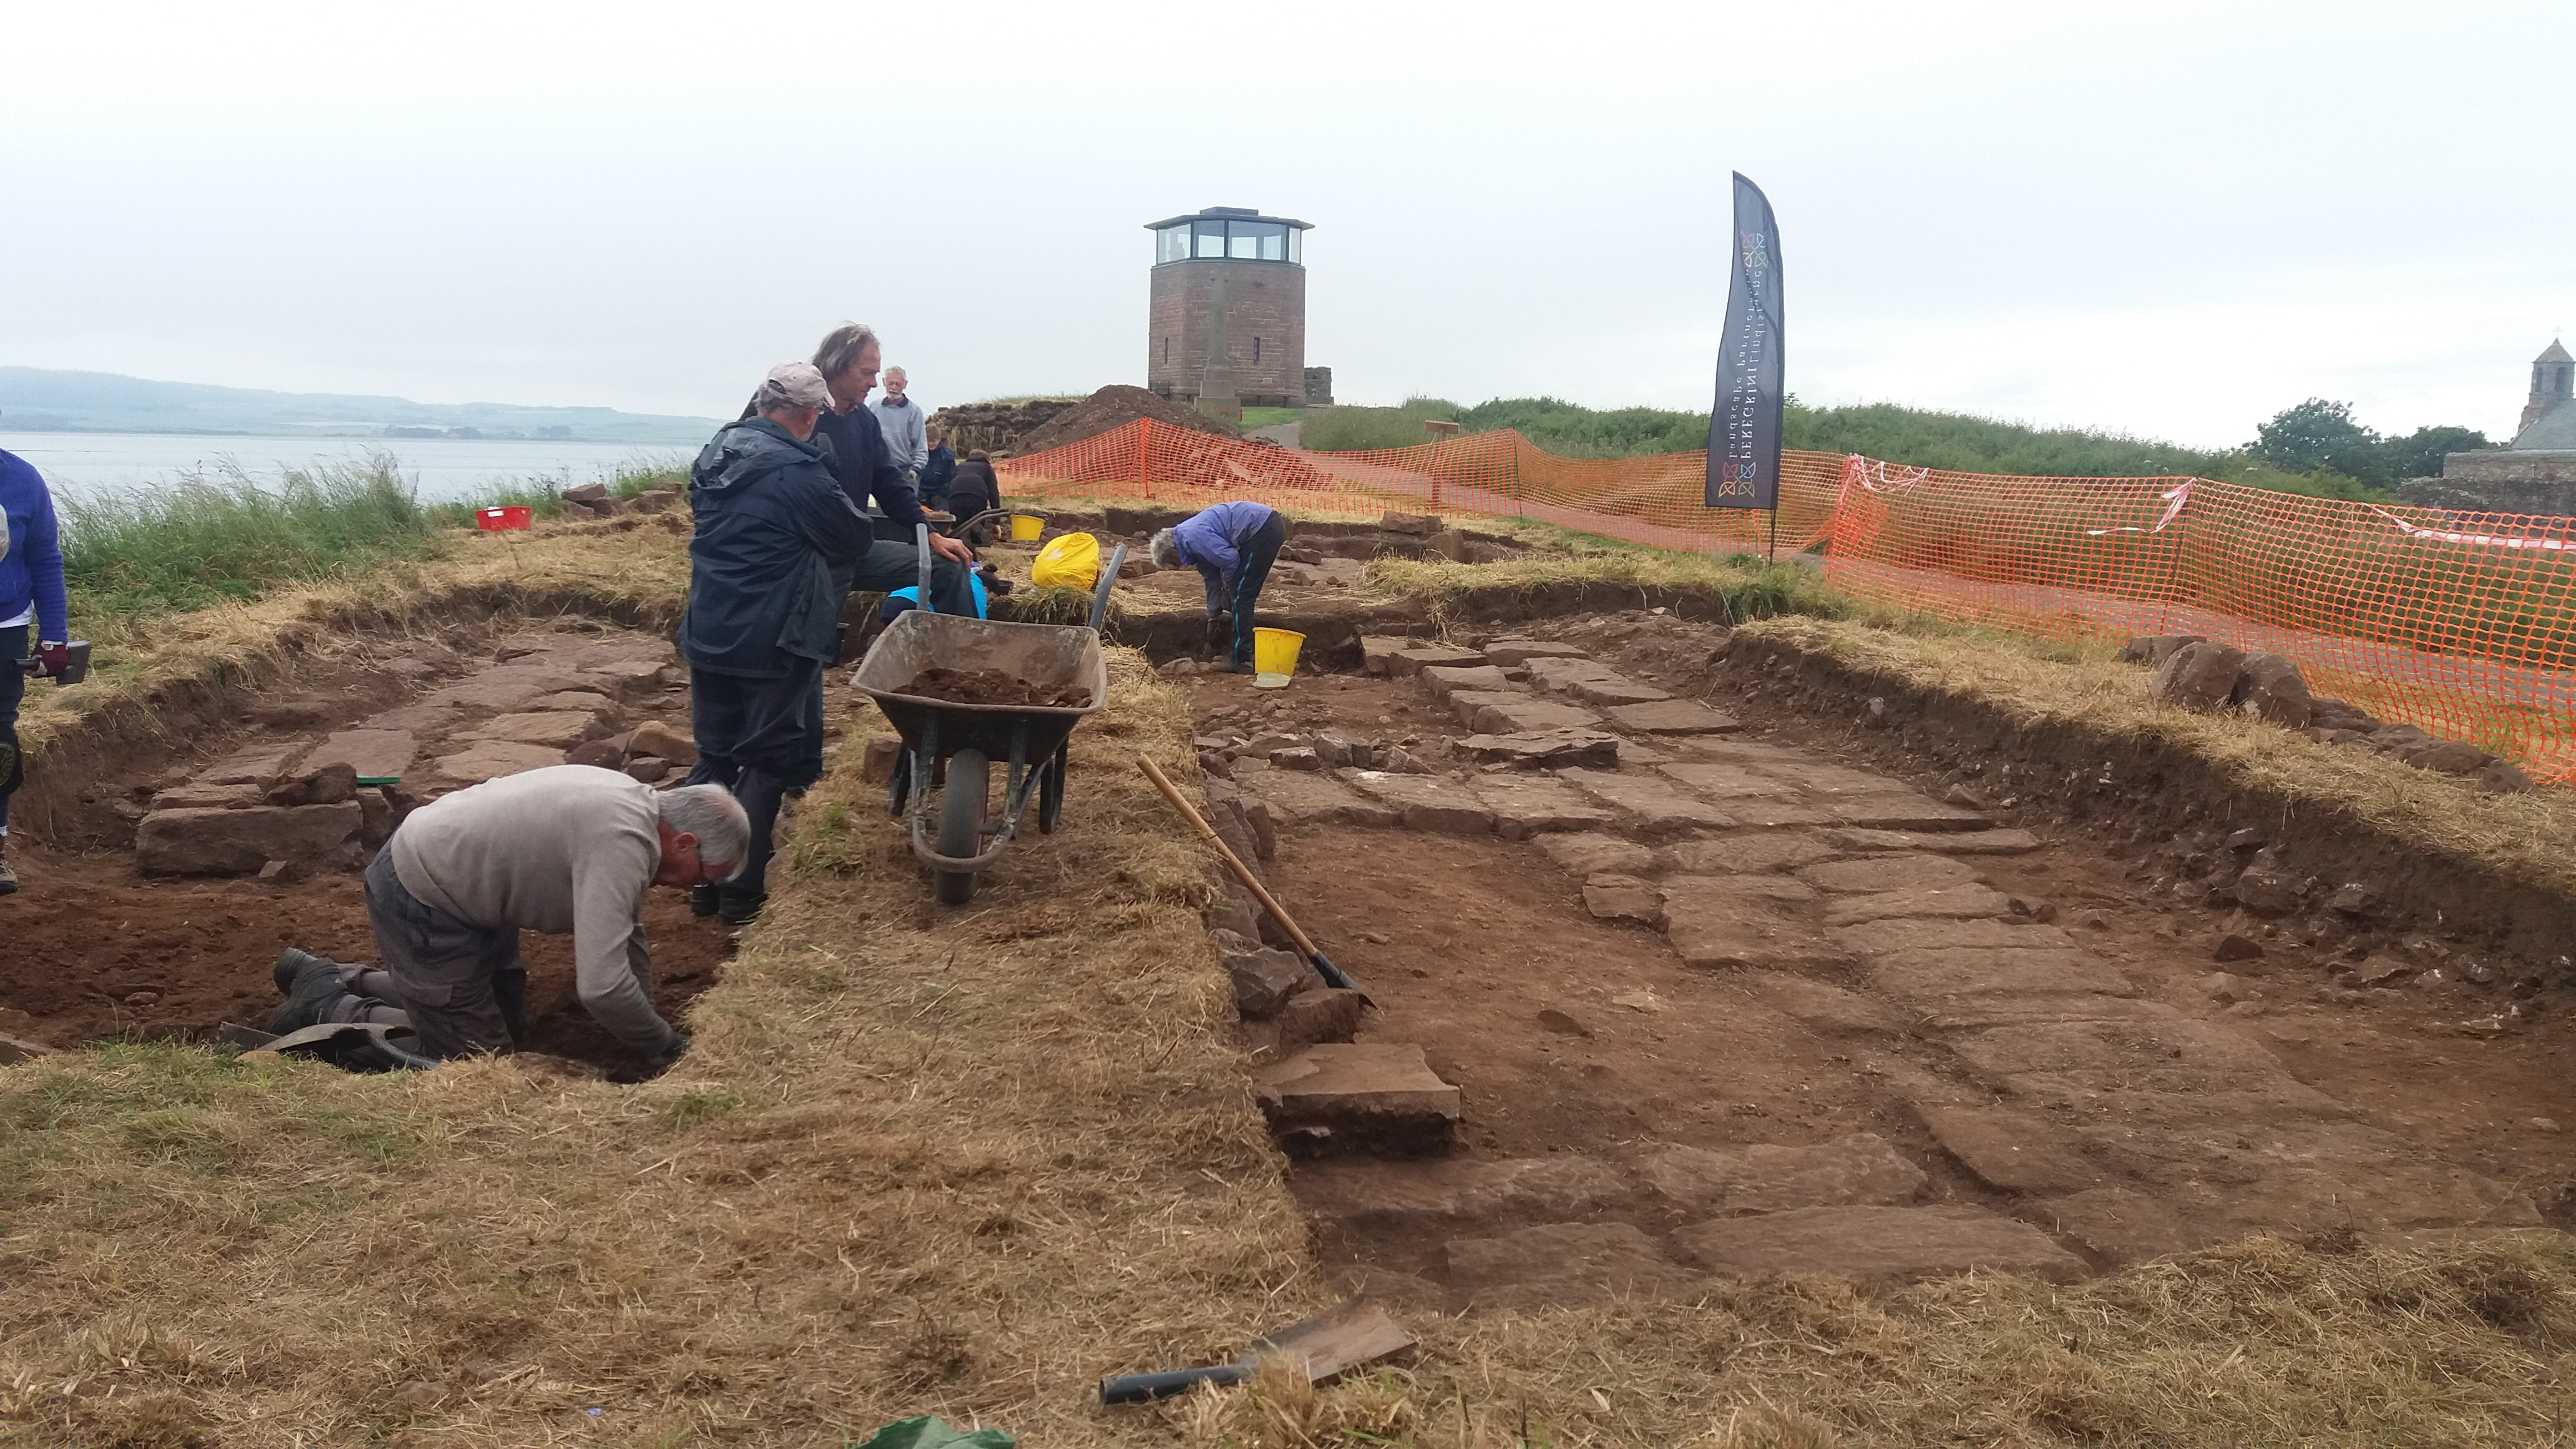 More news on the discoveries in our Community Archaeology Project